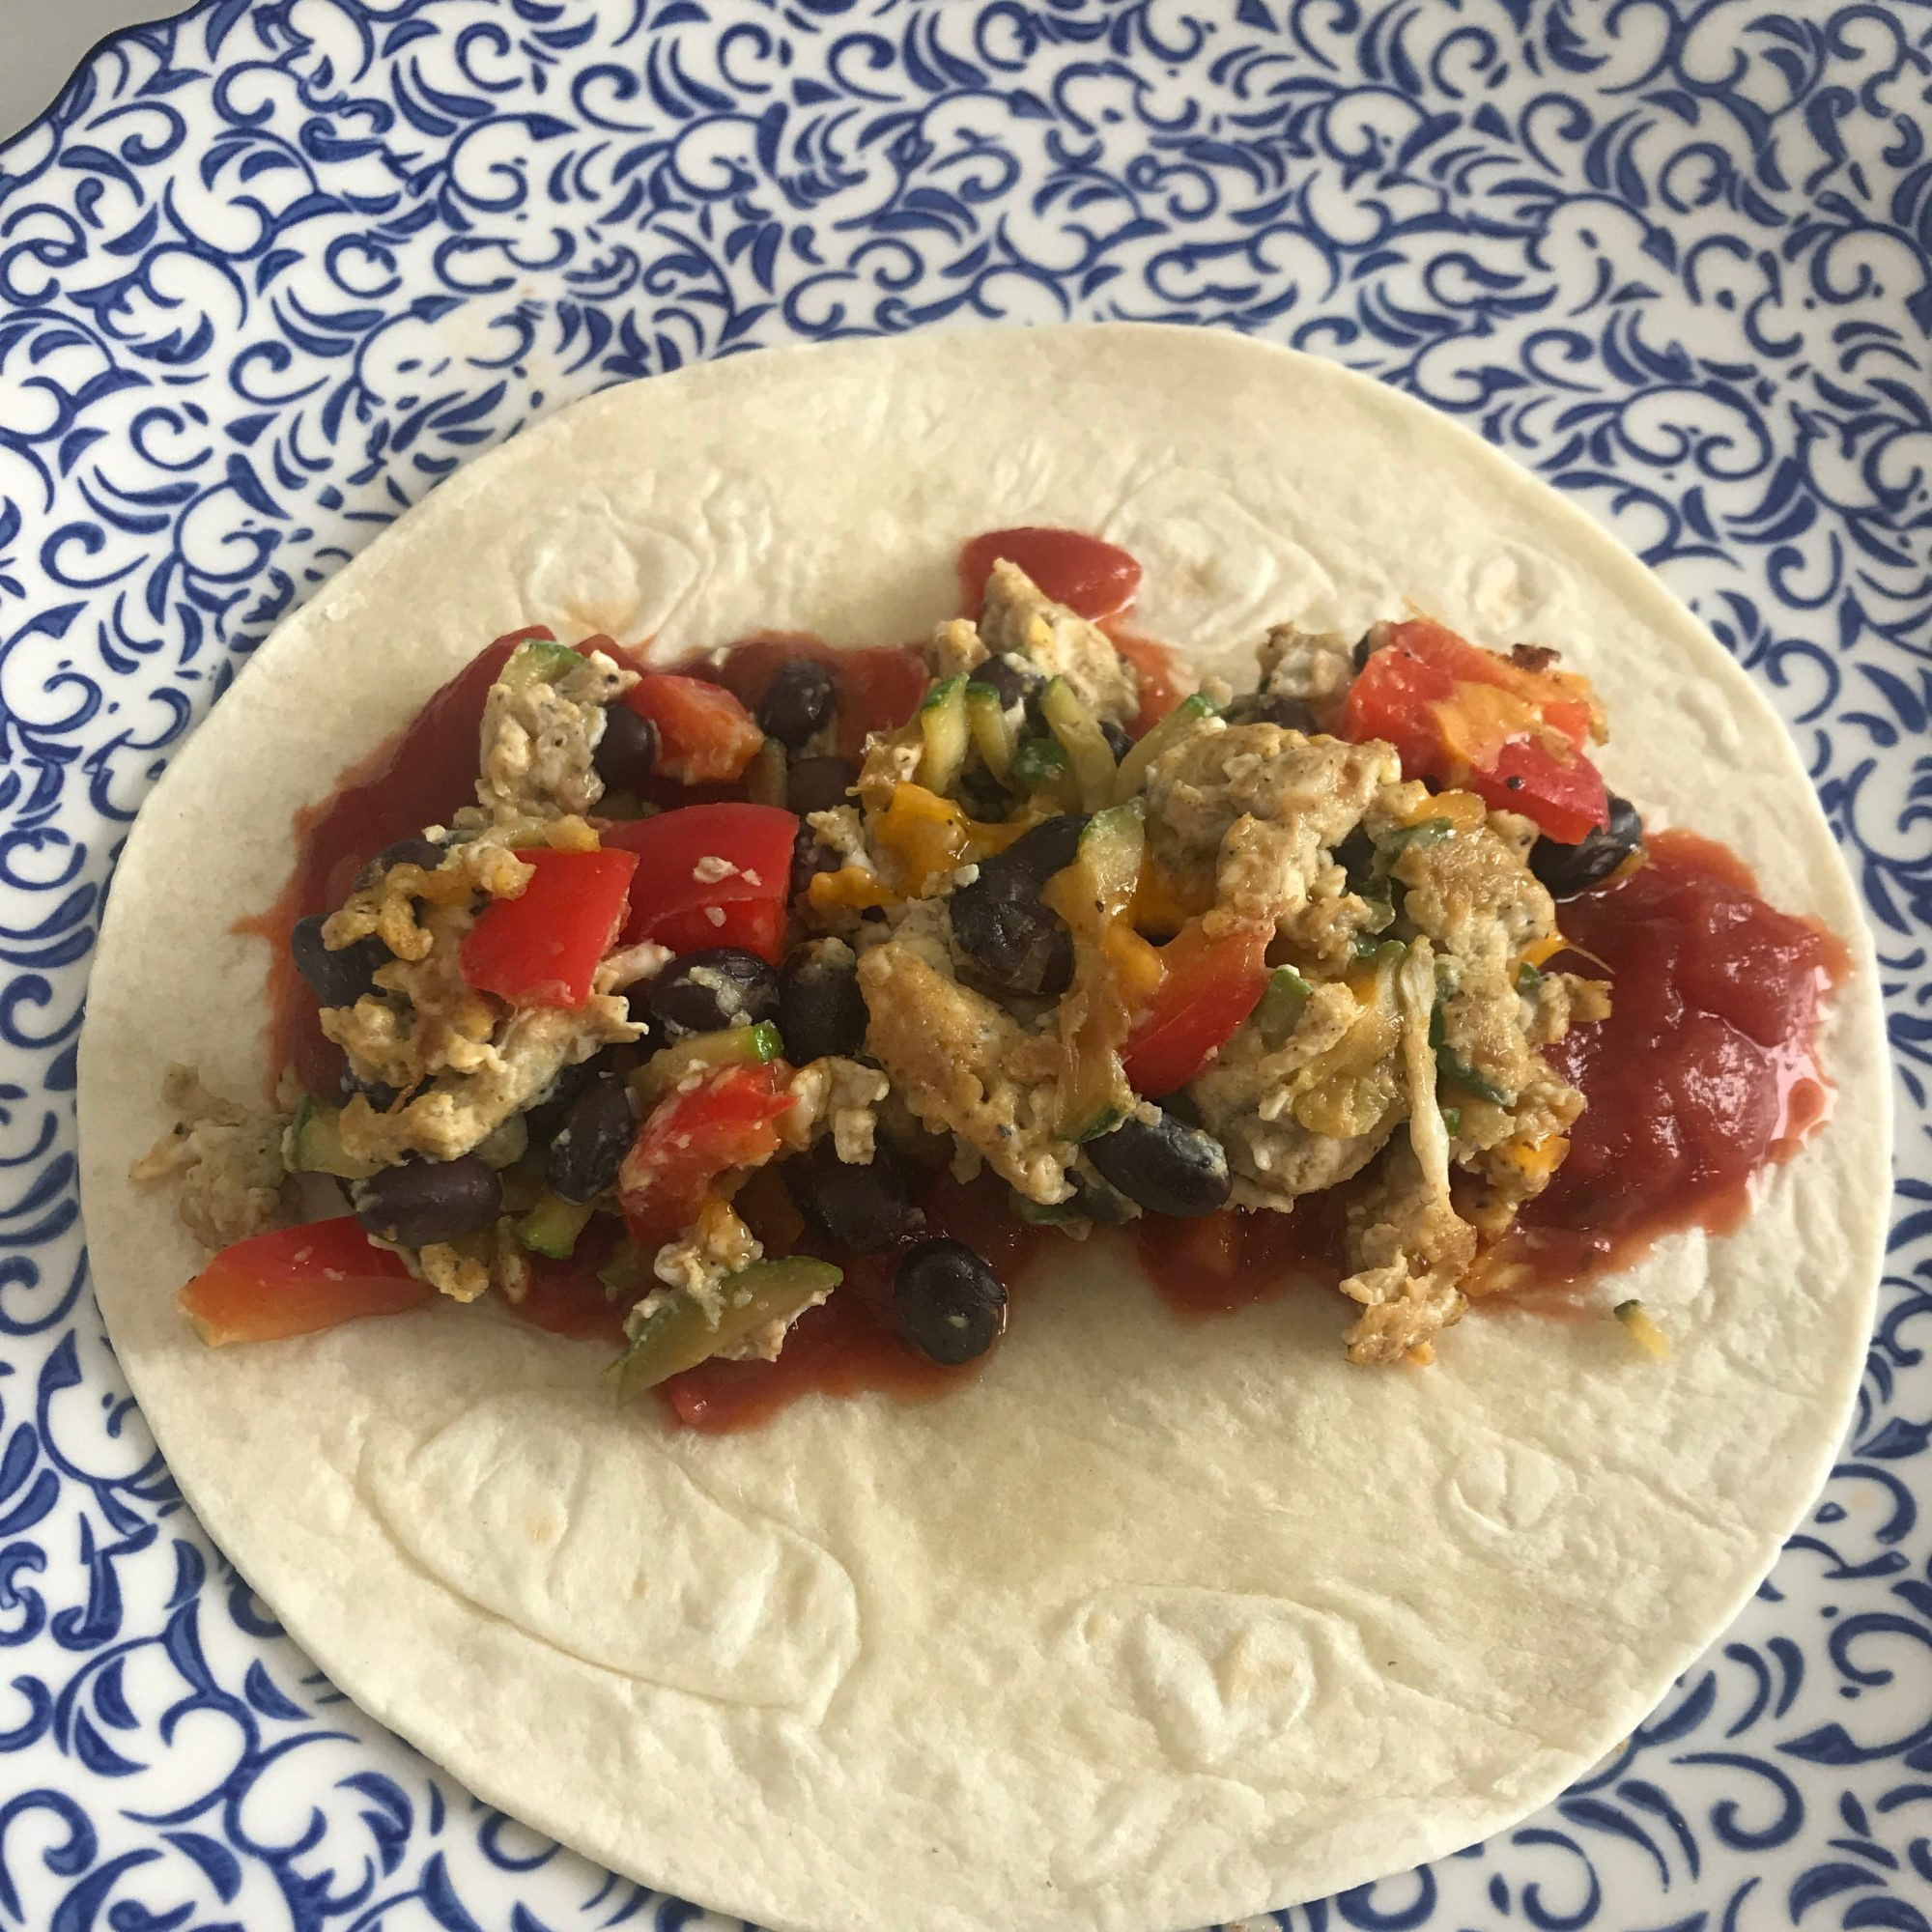 breakfast burrito splayed open on white and blue print plate